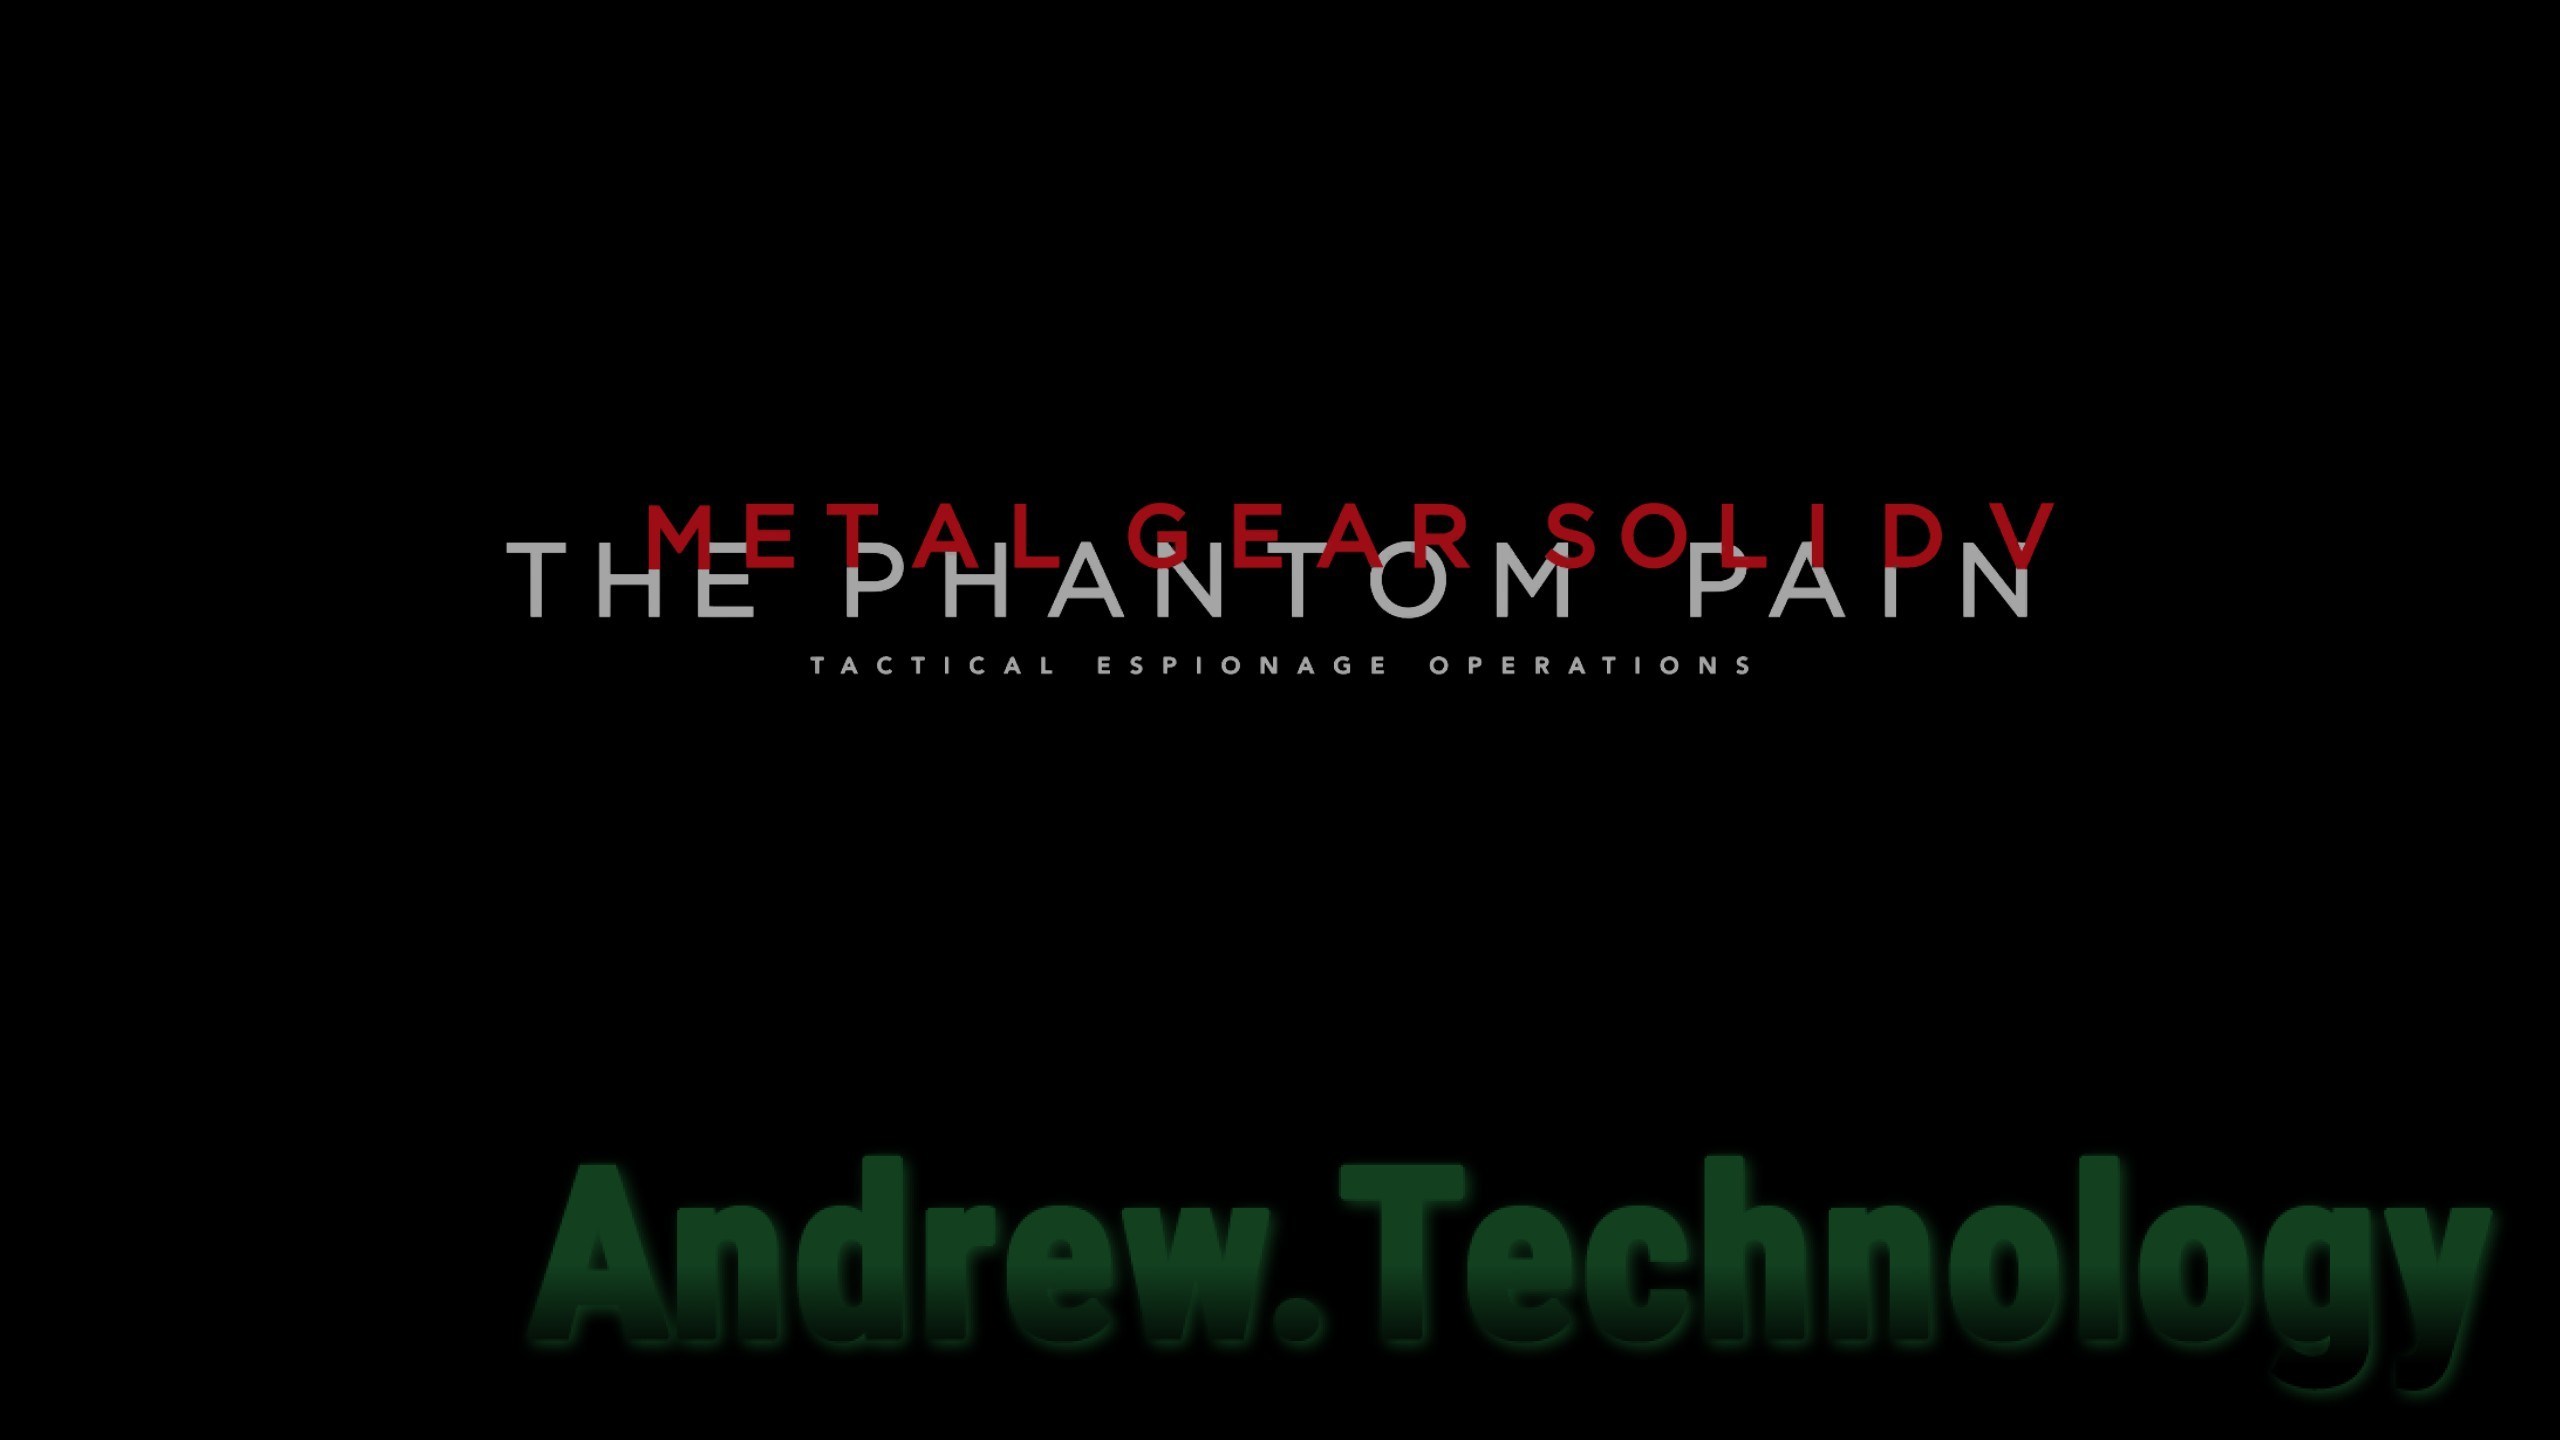 Metal Gear Solid V: The Phantom Pain Tactical Espinogage Opertions title